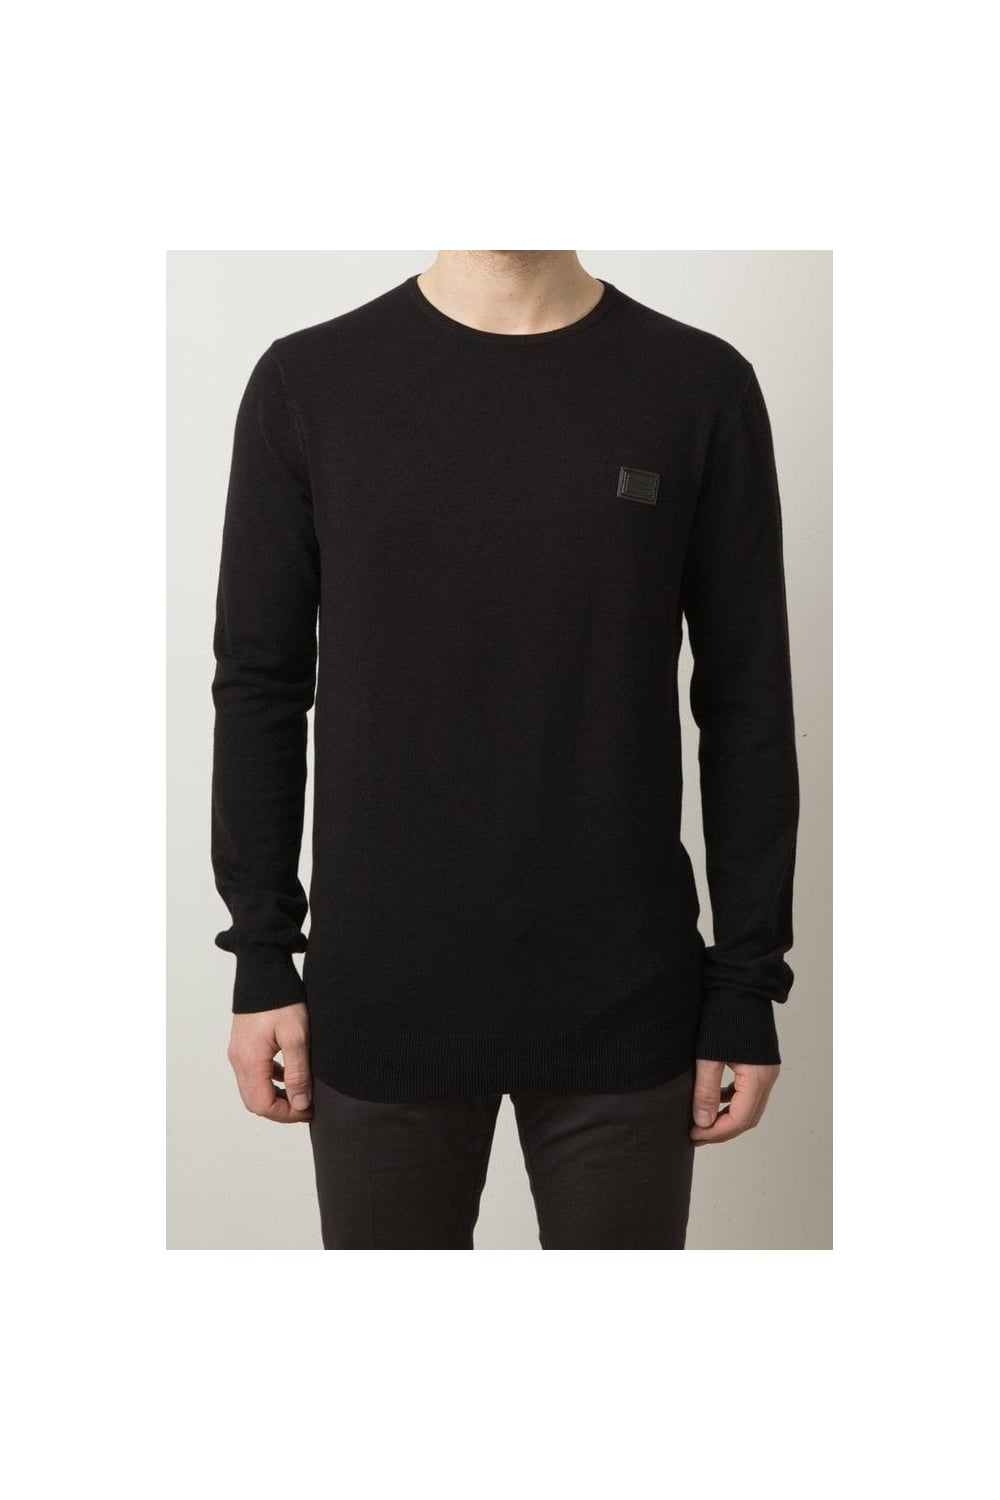 eec27cda2c30a Black Badge Sweater Black